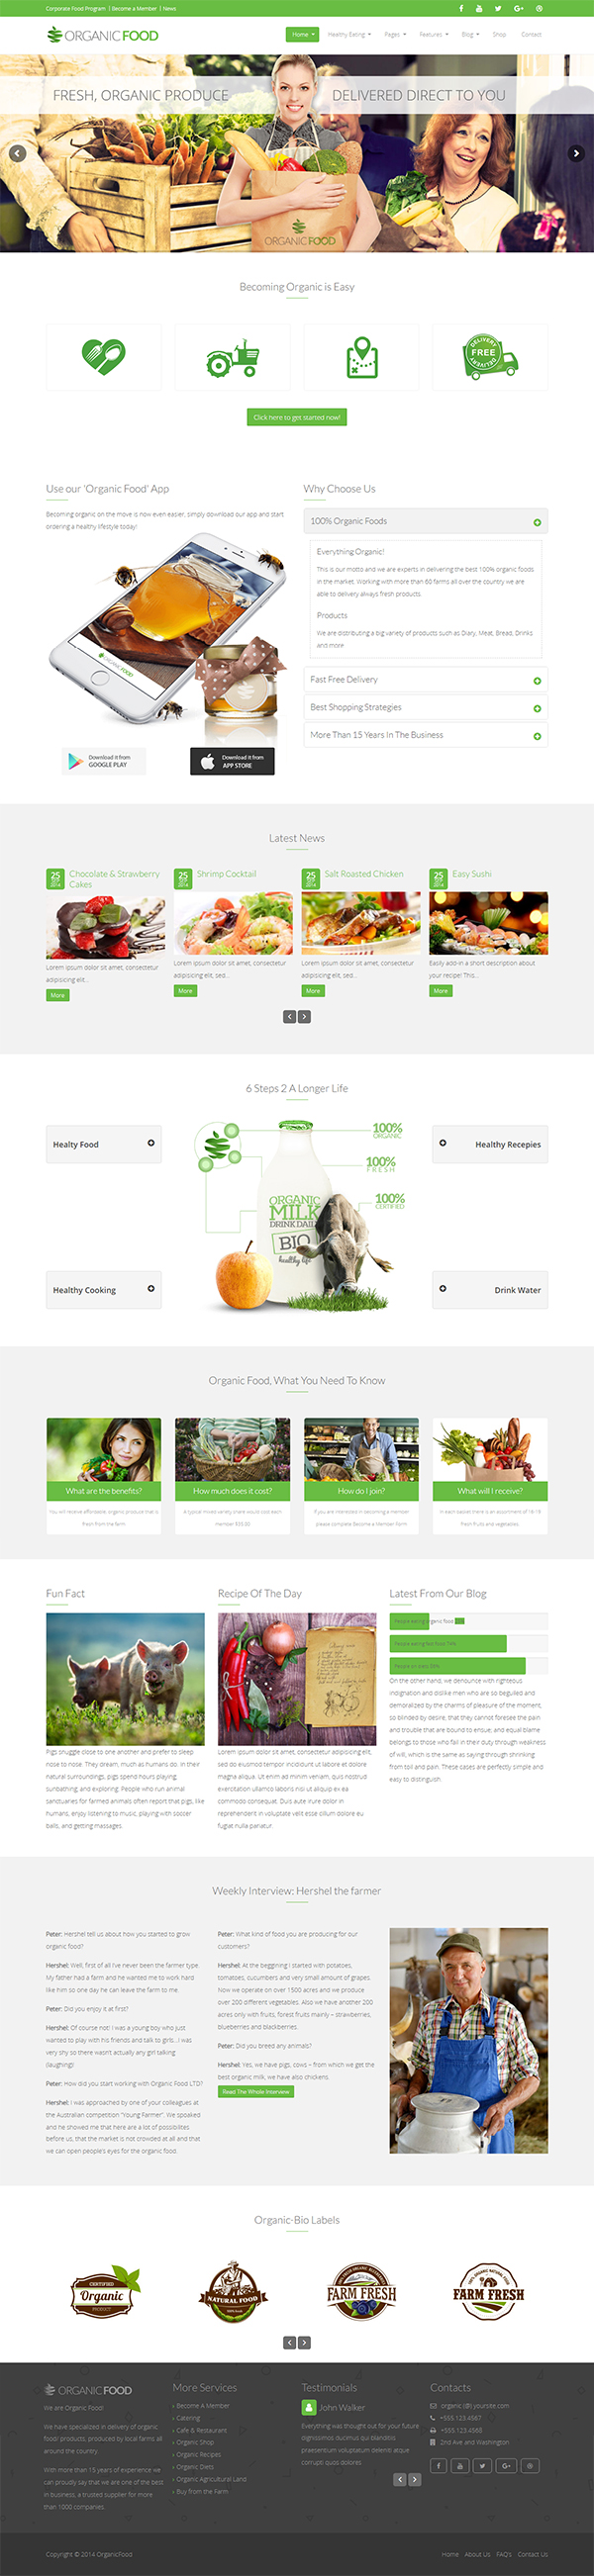 OrganicFood | Responsive WordPress Theme